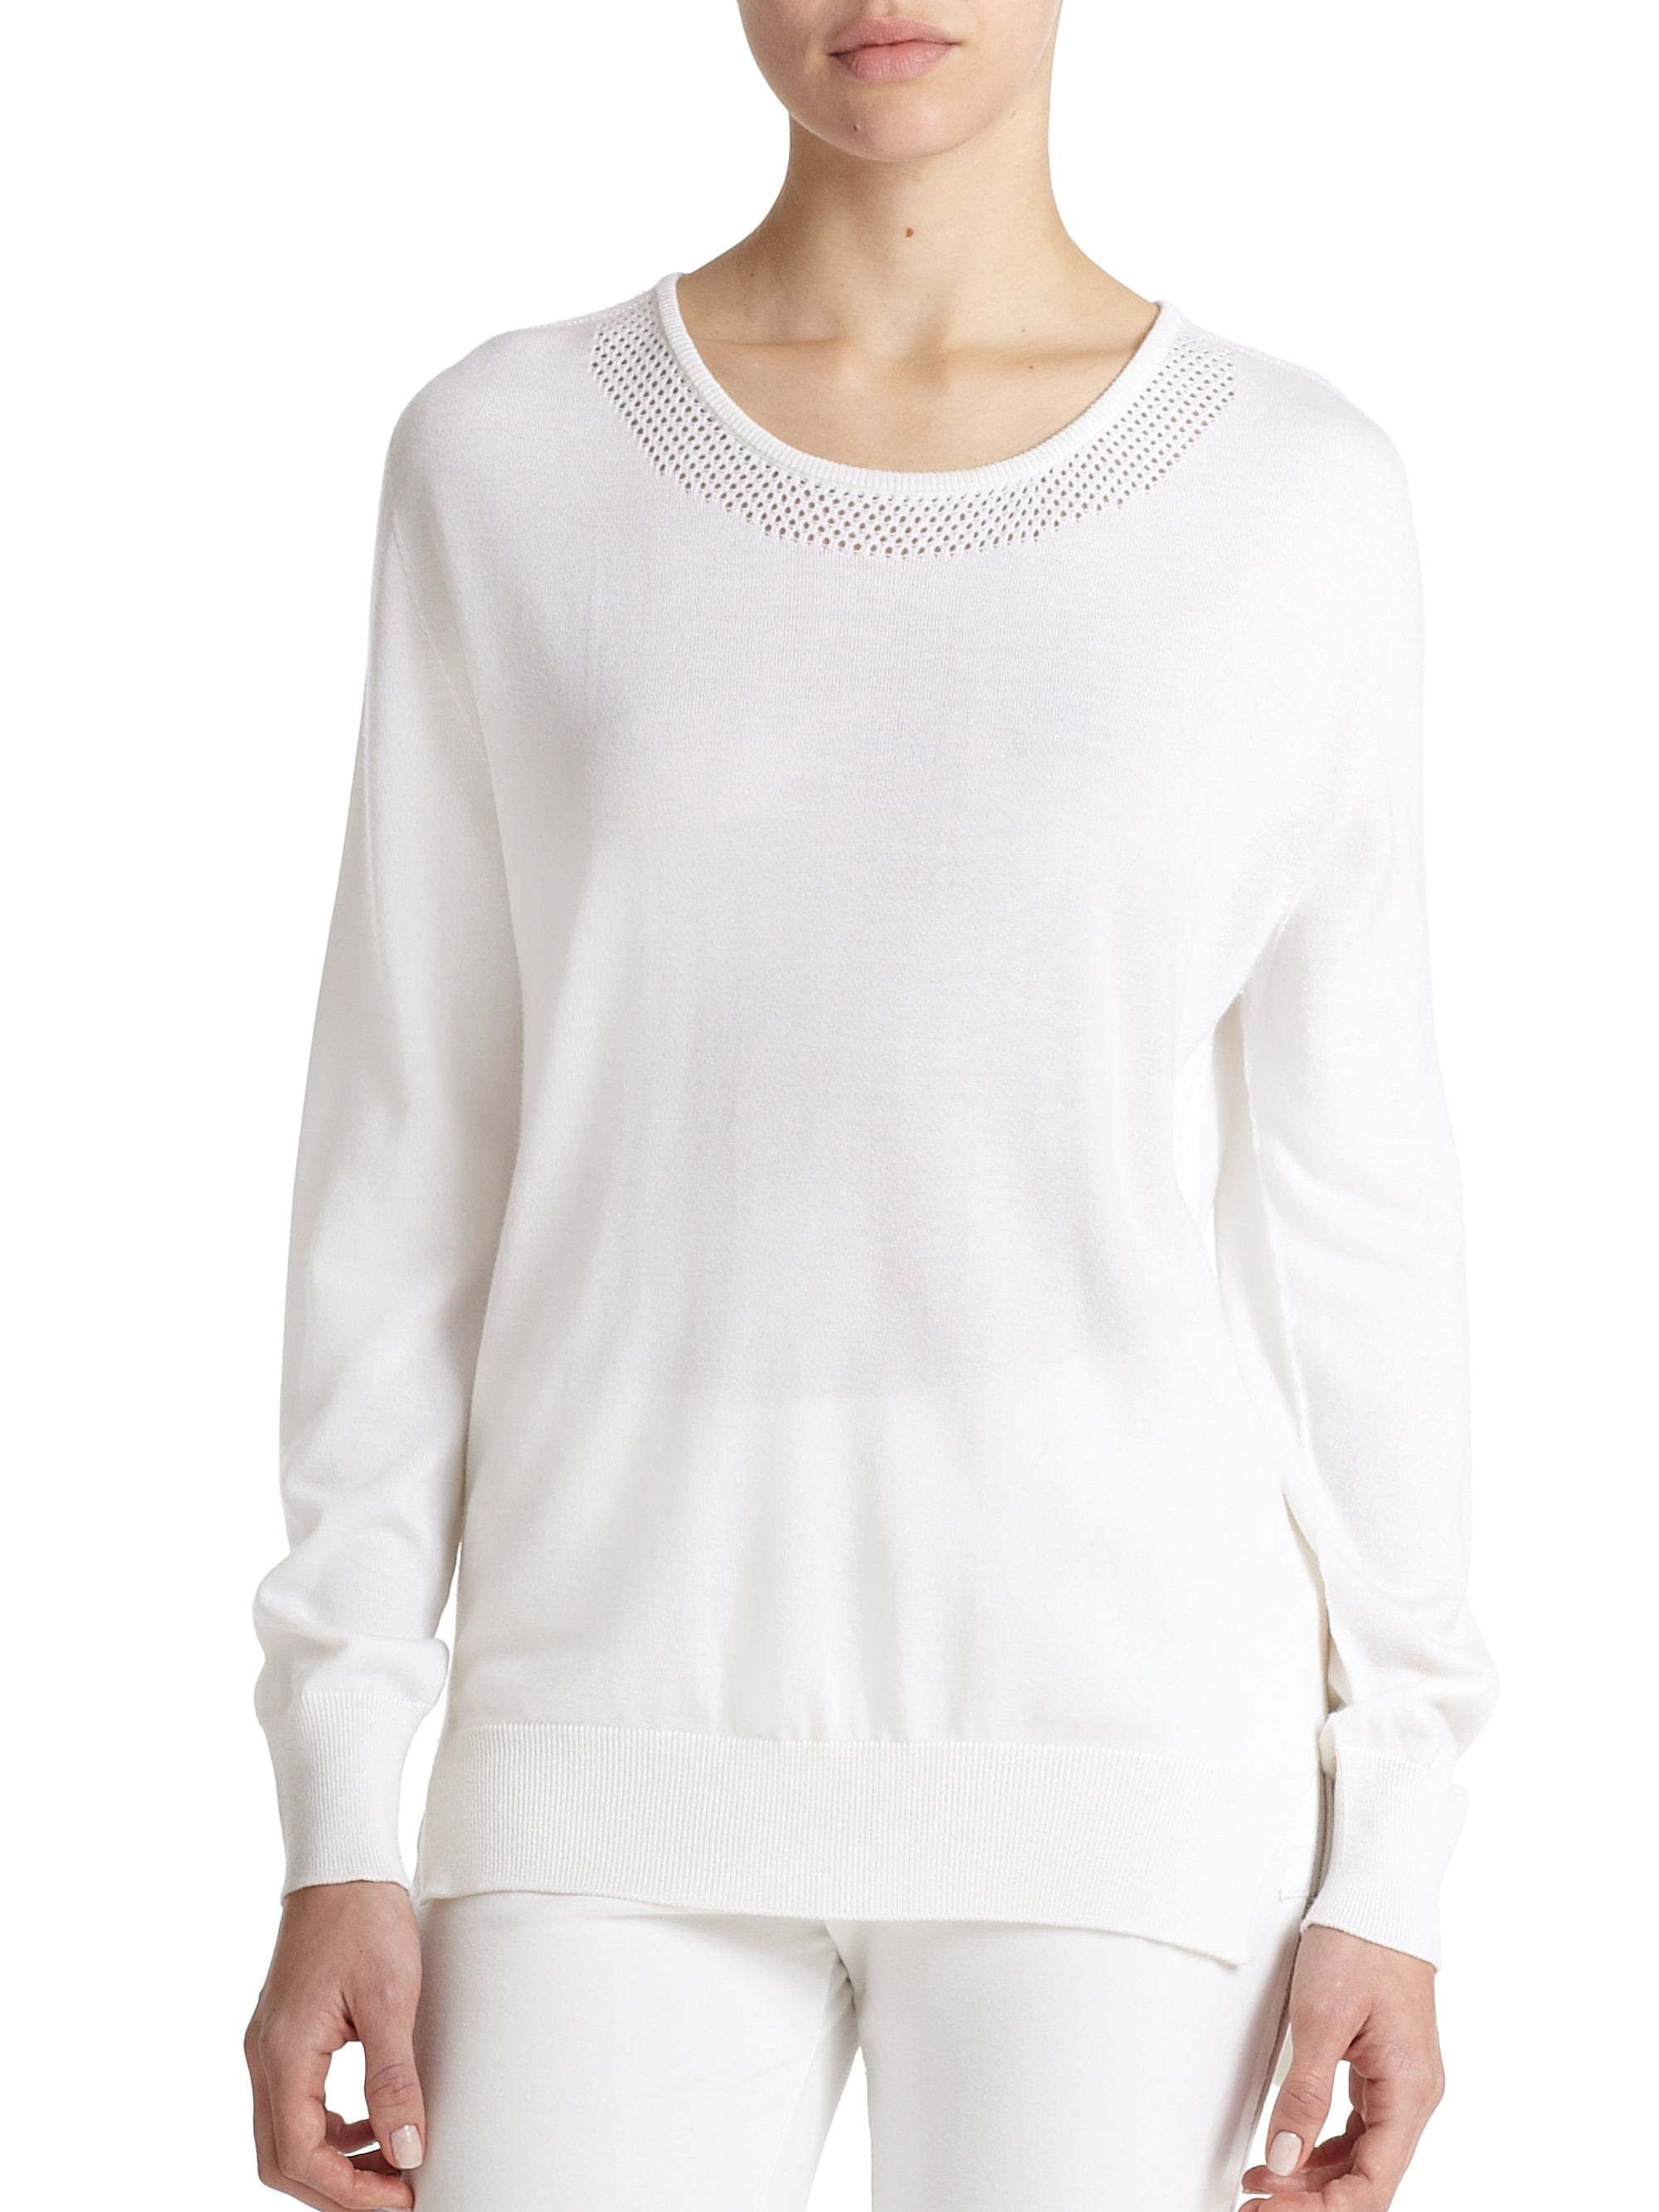 edc179c91 Lyst - Callens Perforated Cashmere Sweater in White